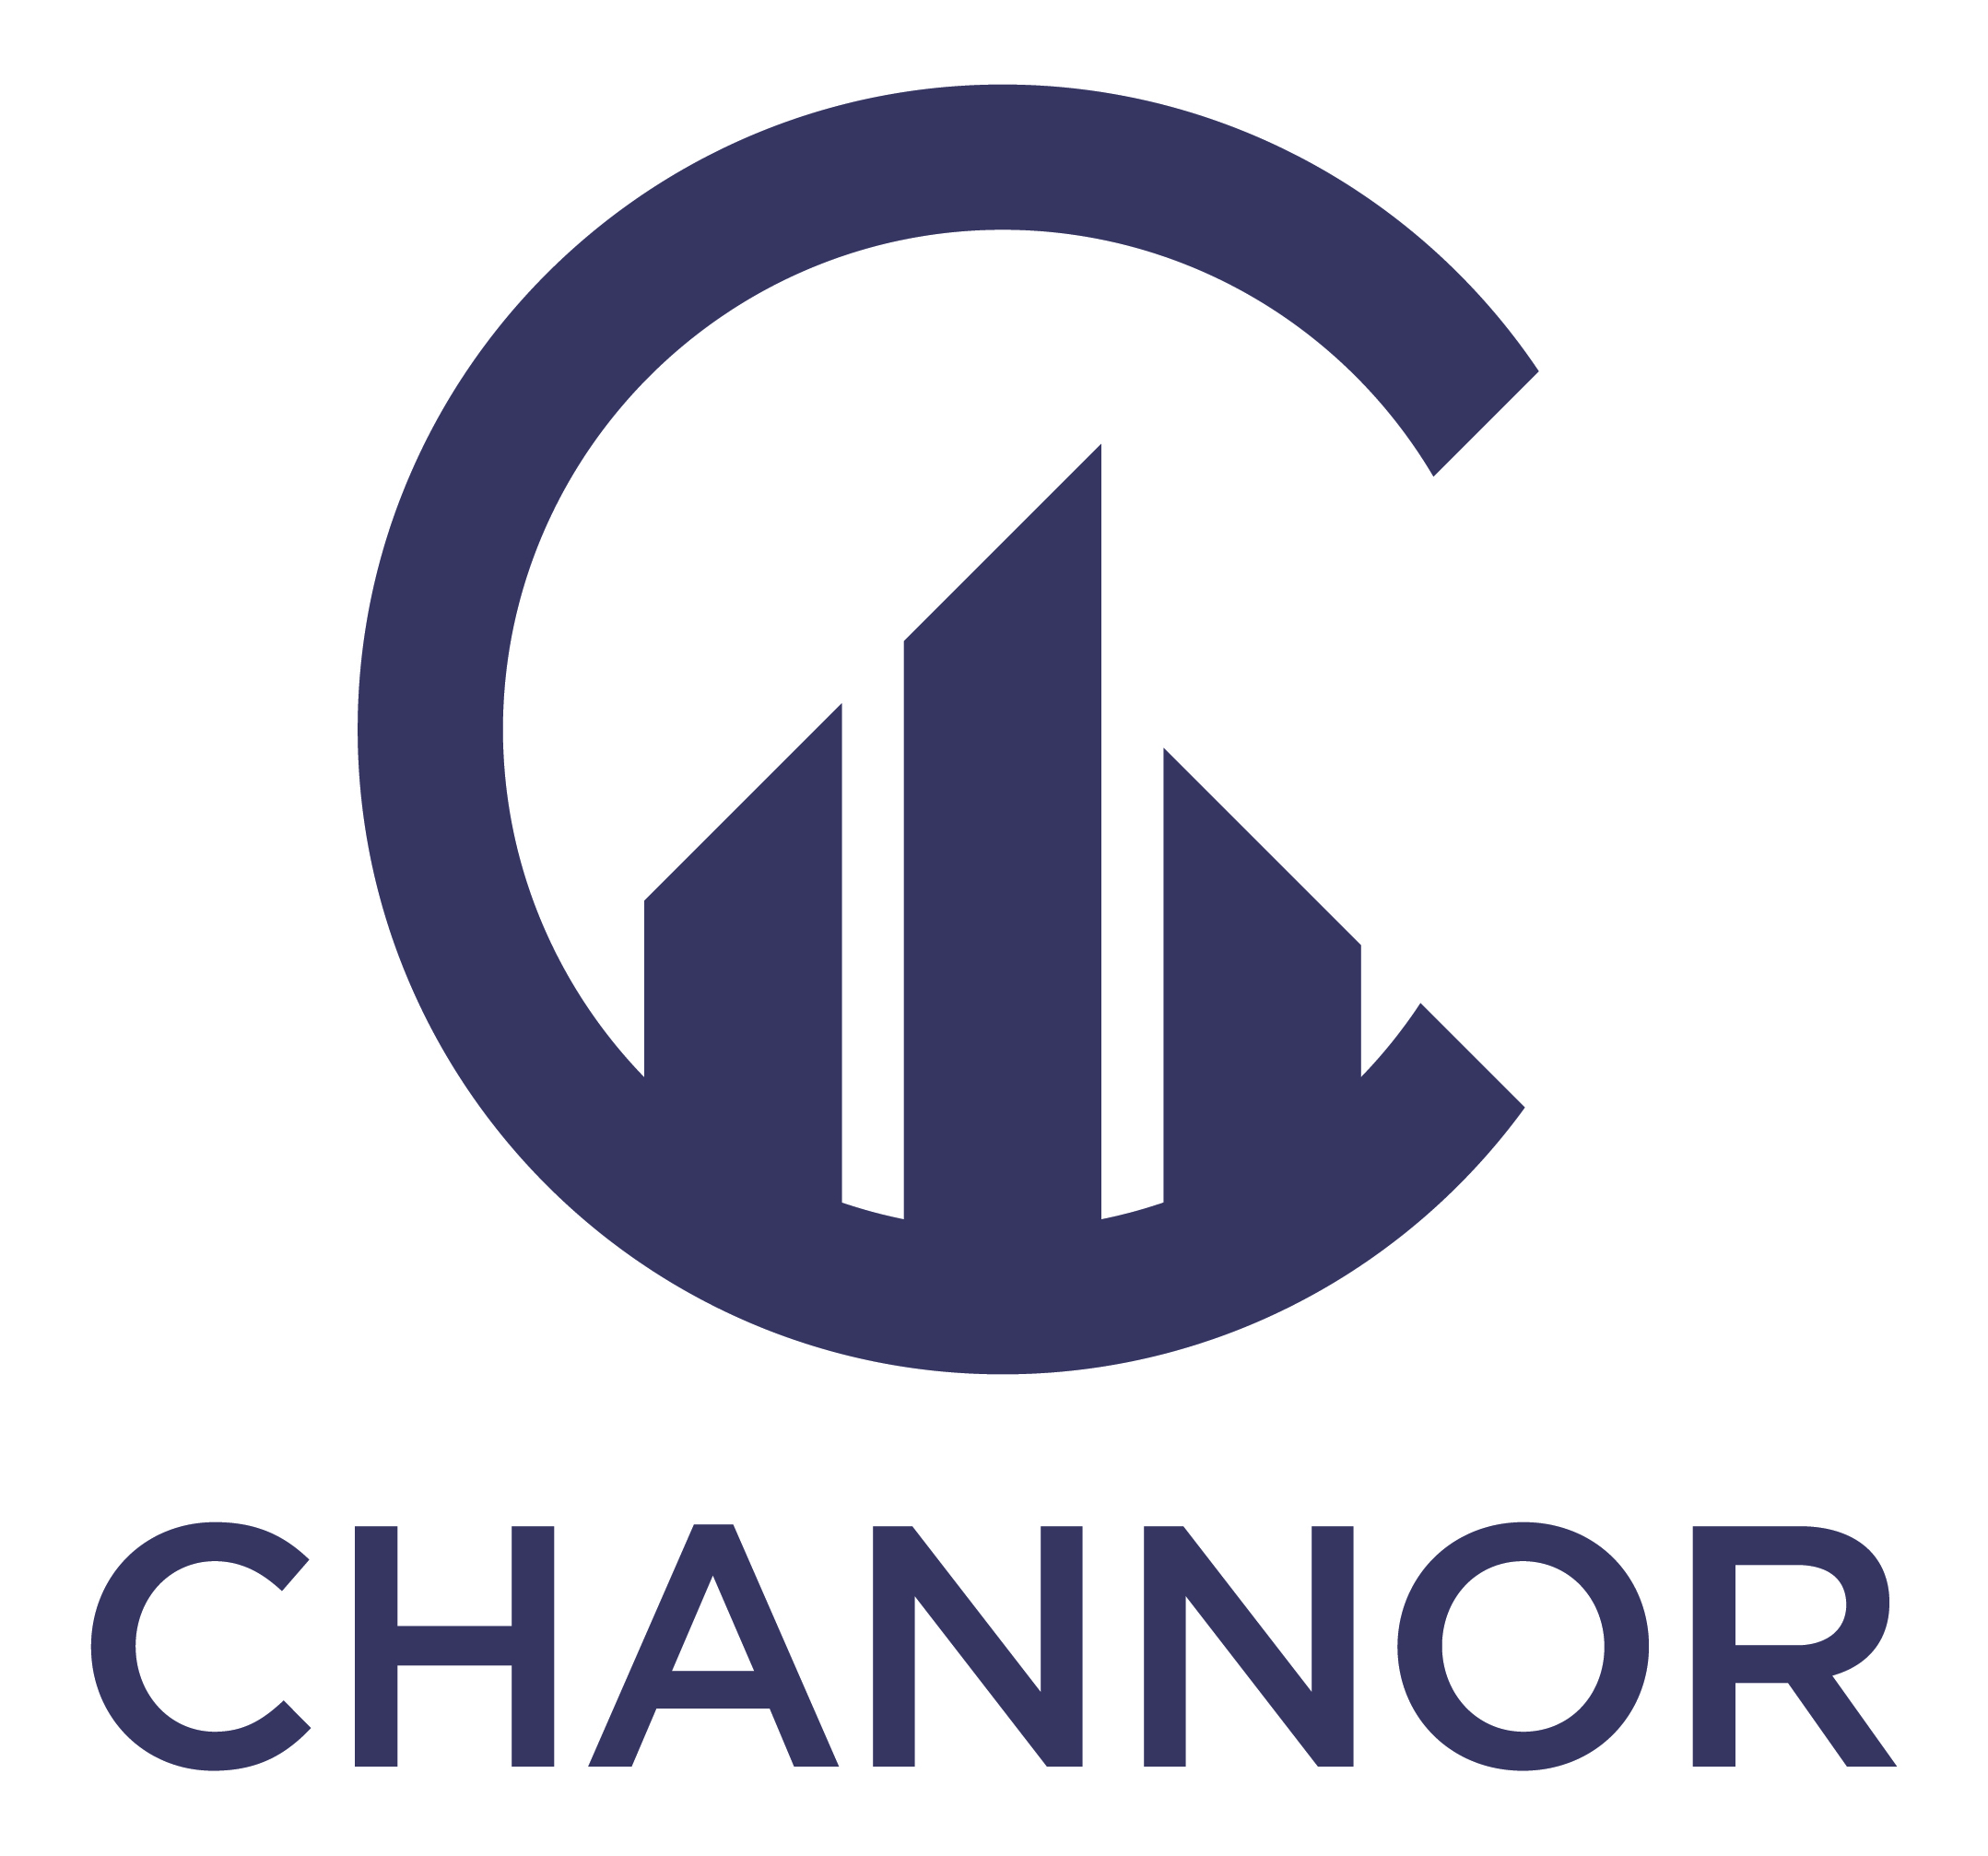 Channor Limited